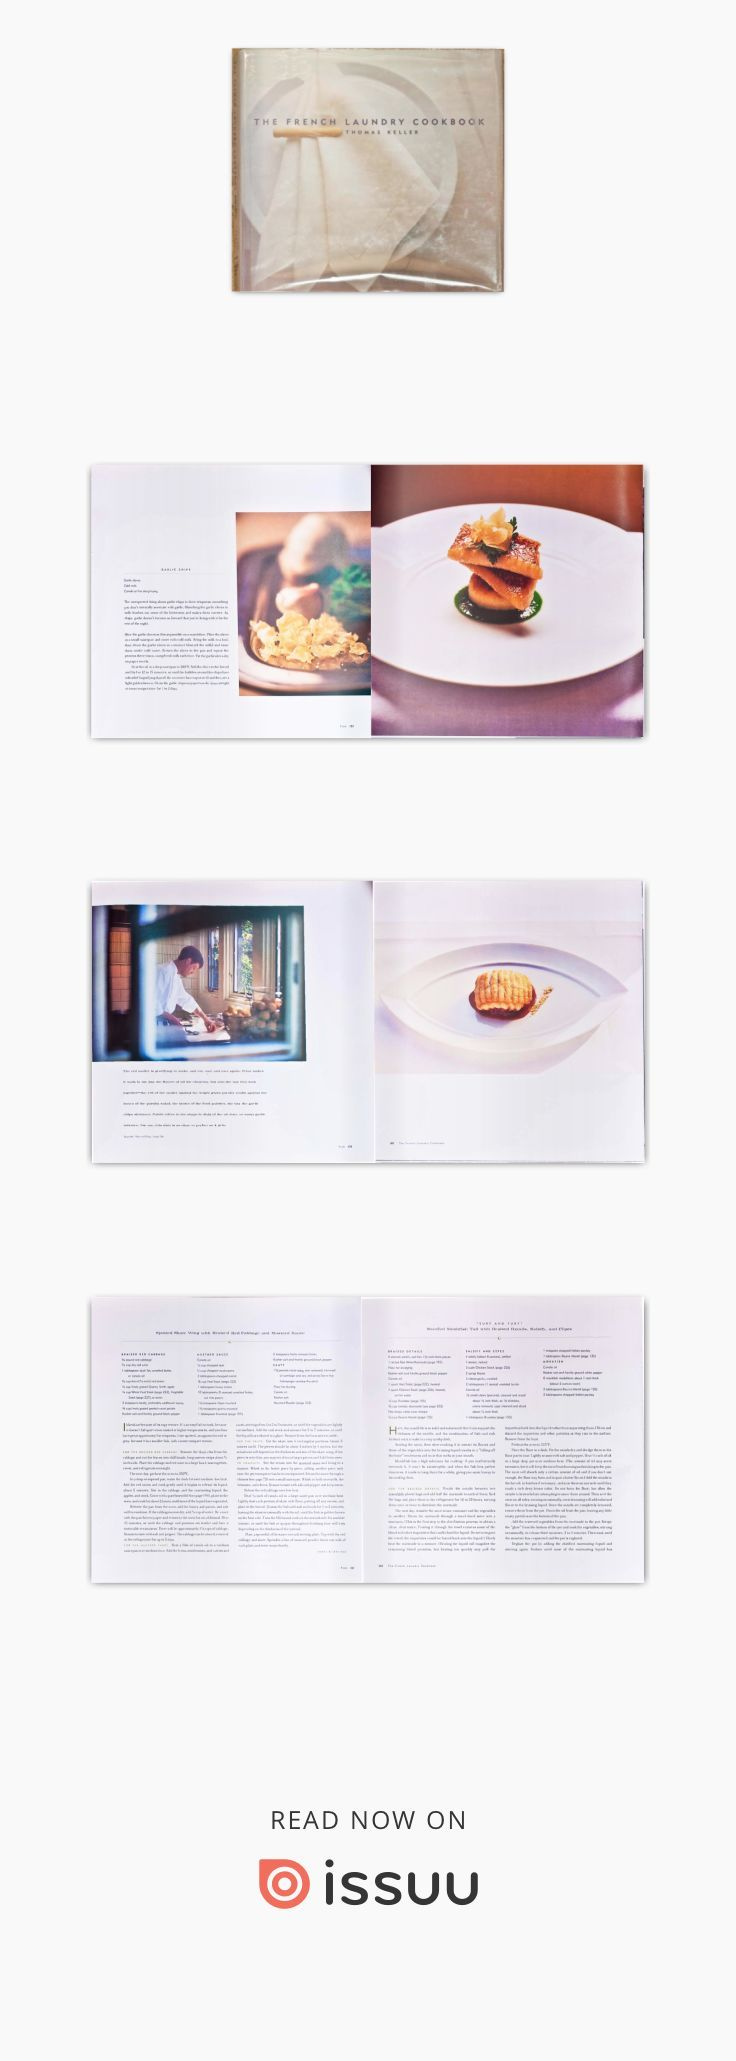 The French Laundry Cookbook 2 Edition With Images The French Laundry Cookbook French